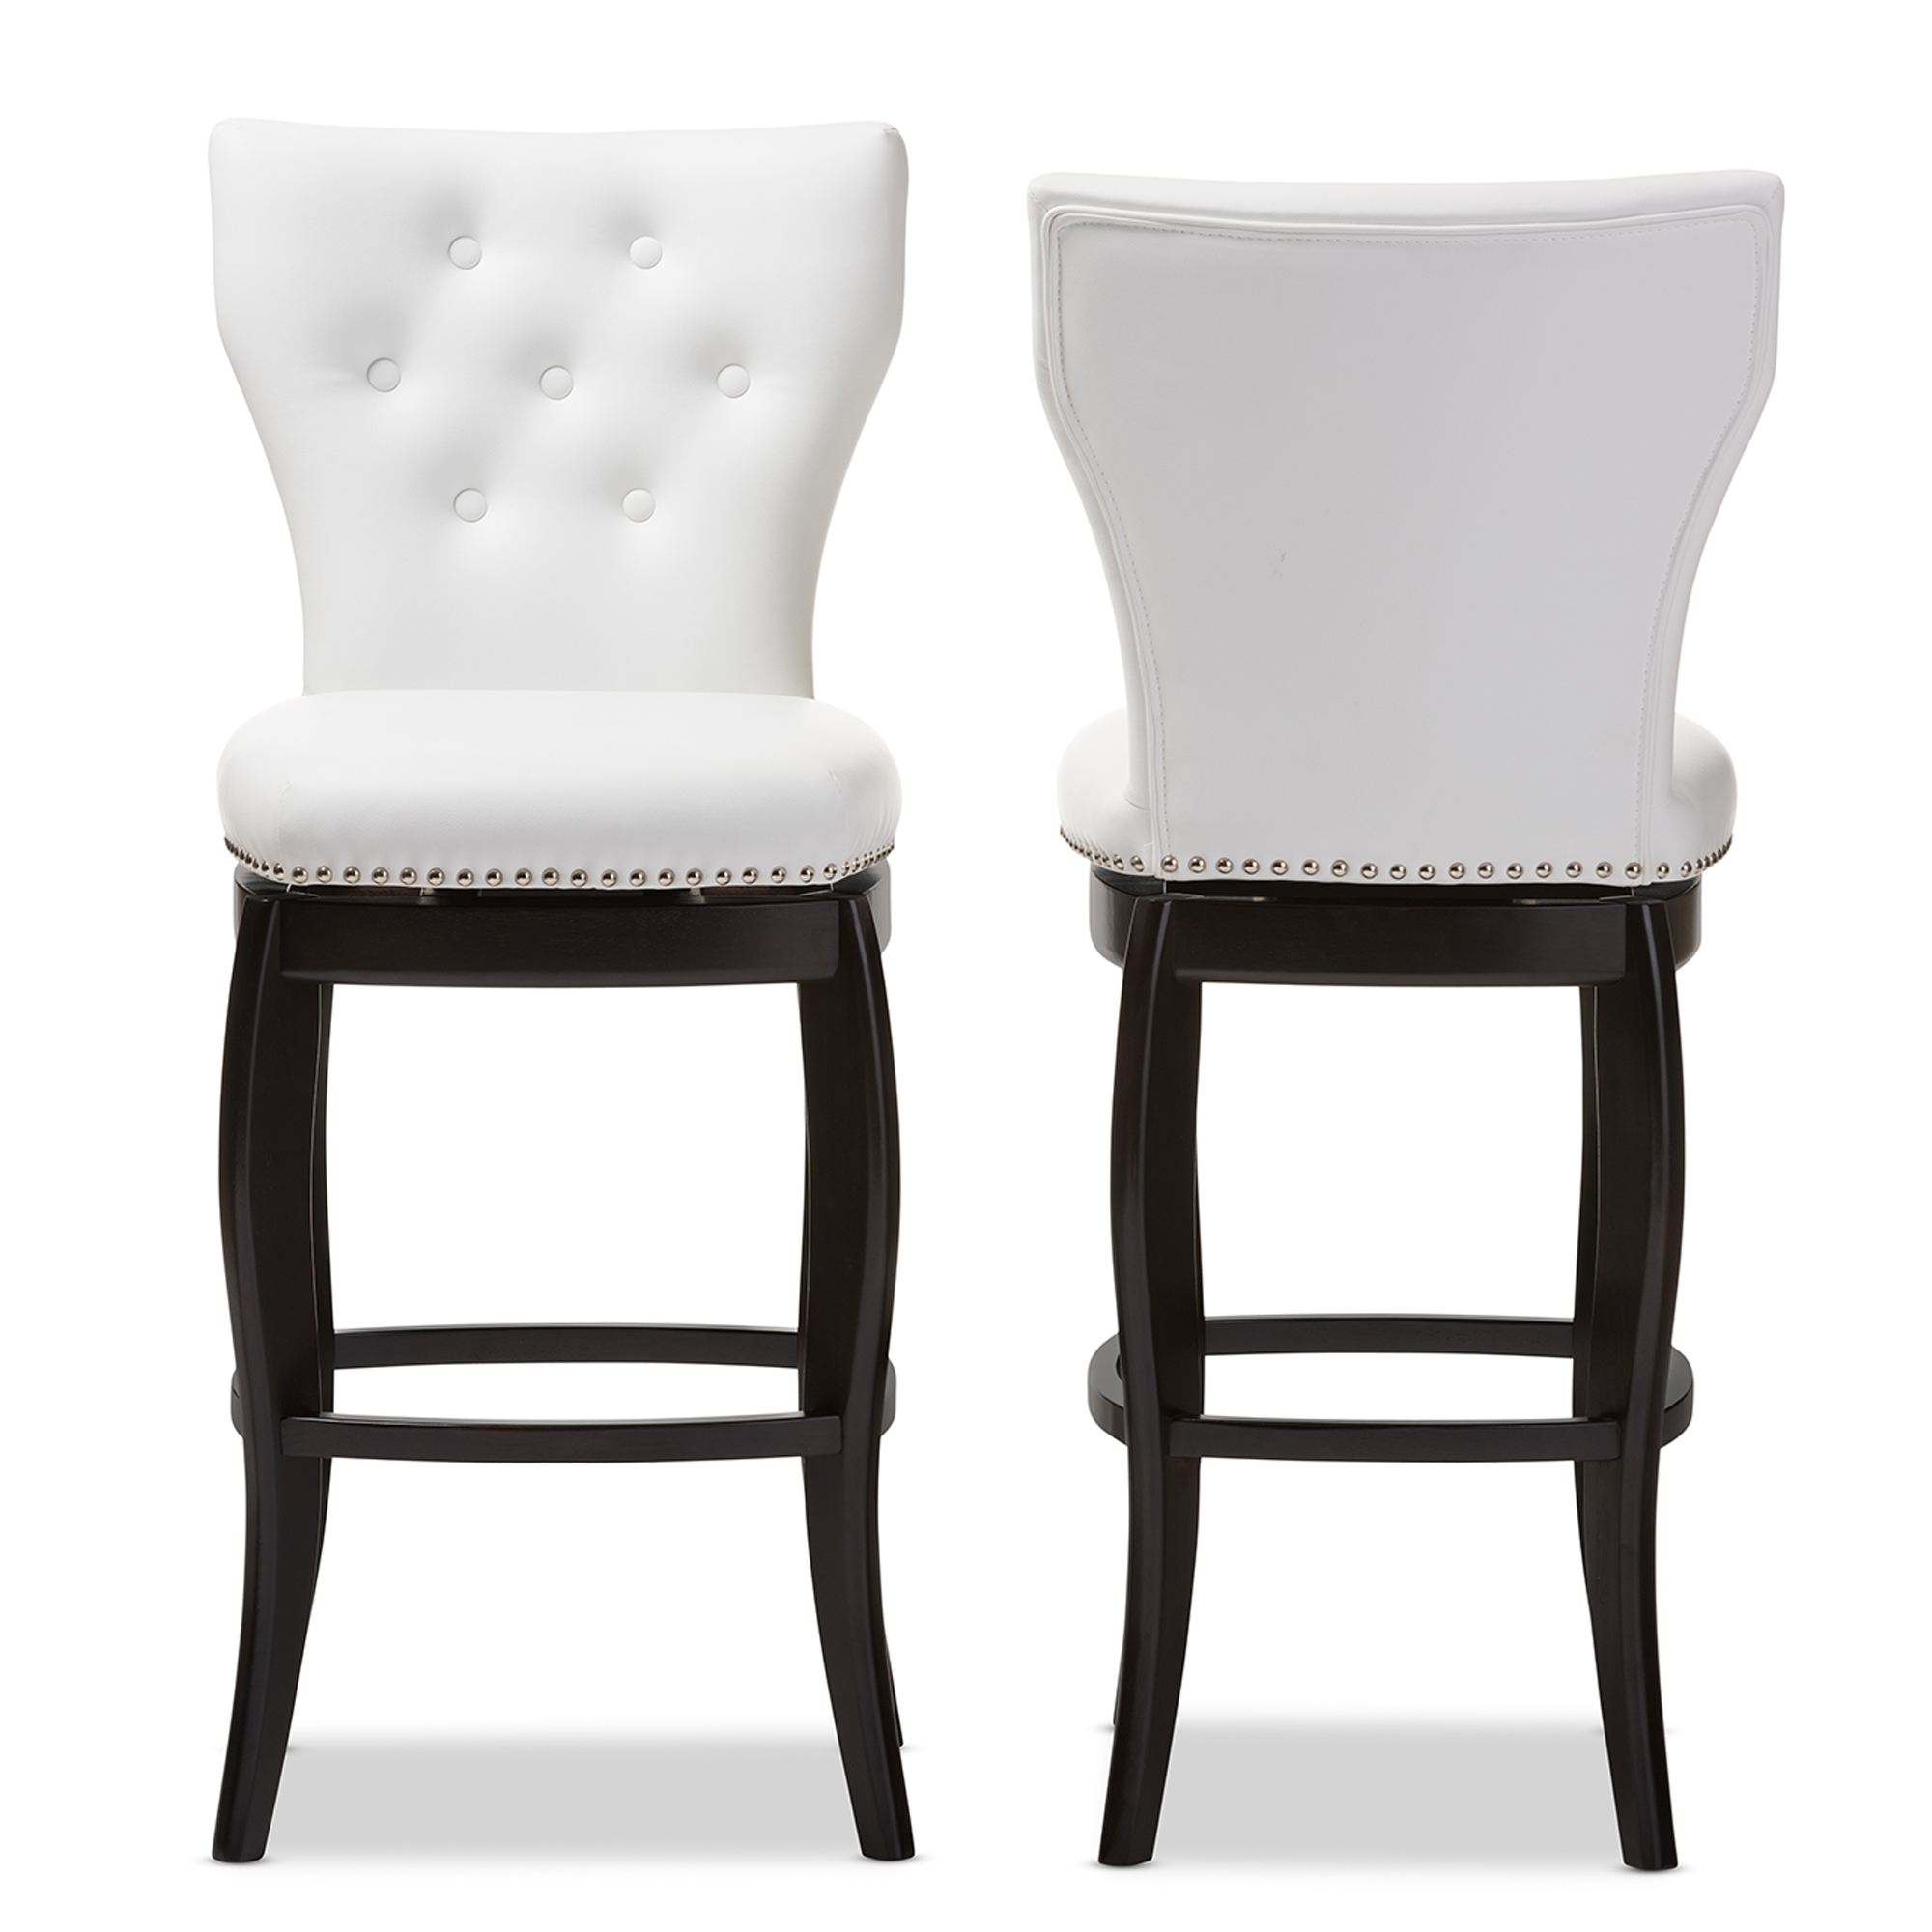 Baxton Studio Leonice Modern And Contemporary White Faux Leather  Upholstered Button Tufted 29 Inch Swivel Bar Stool